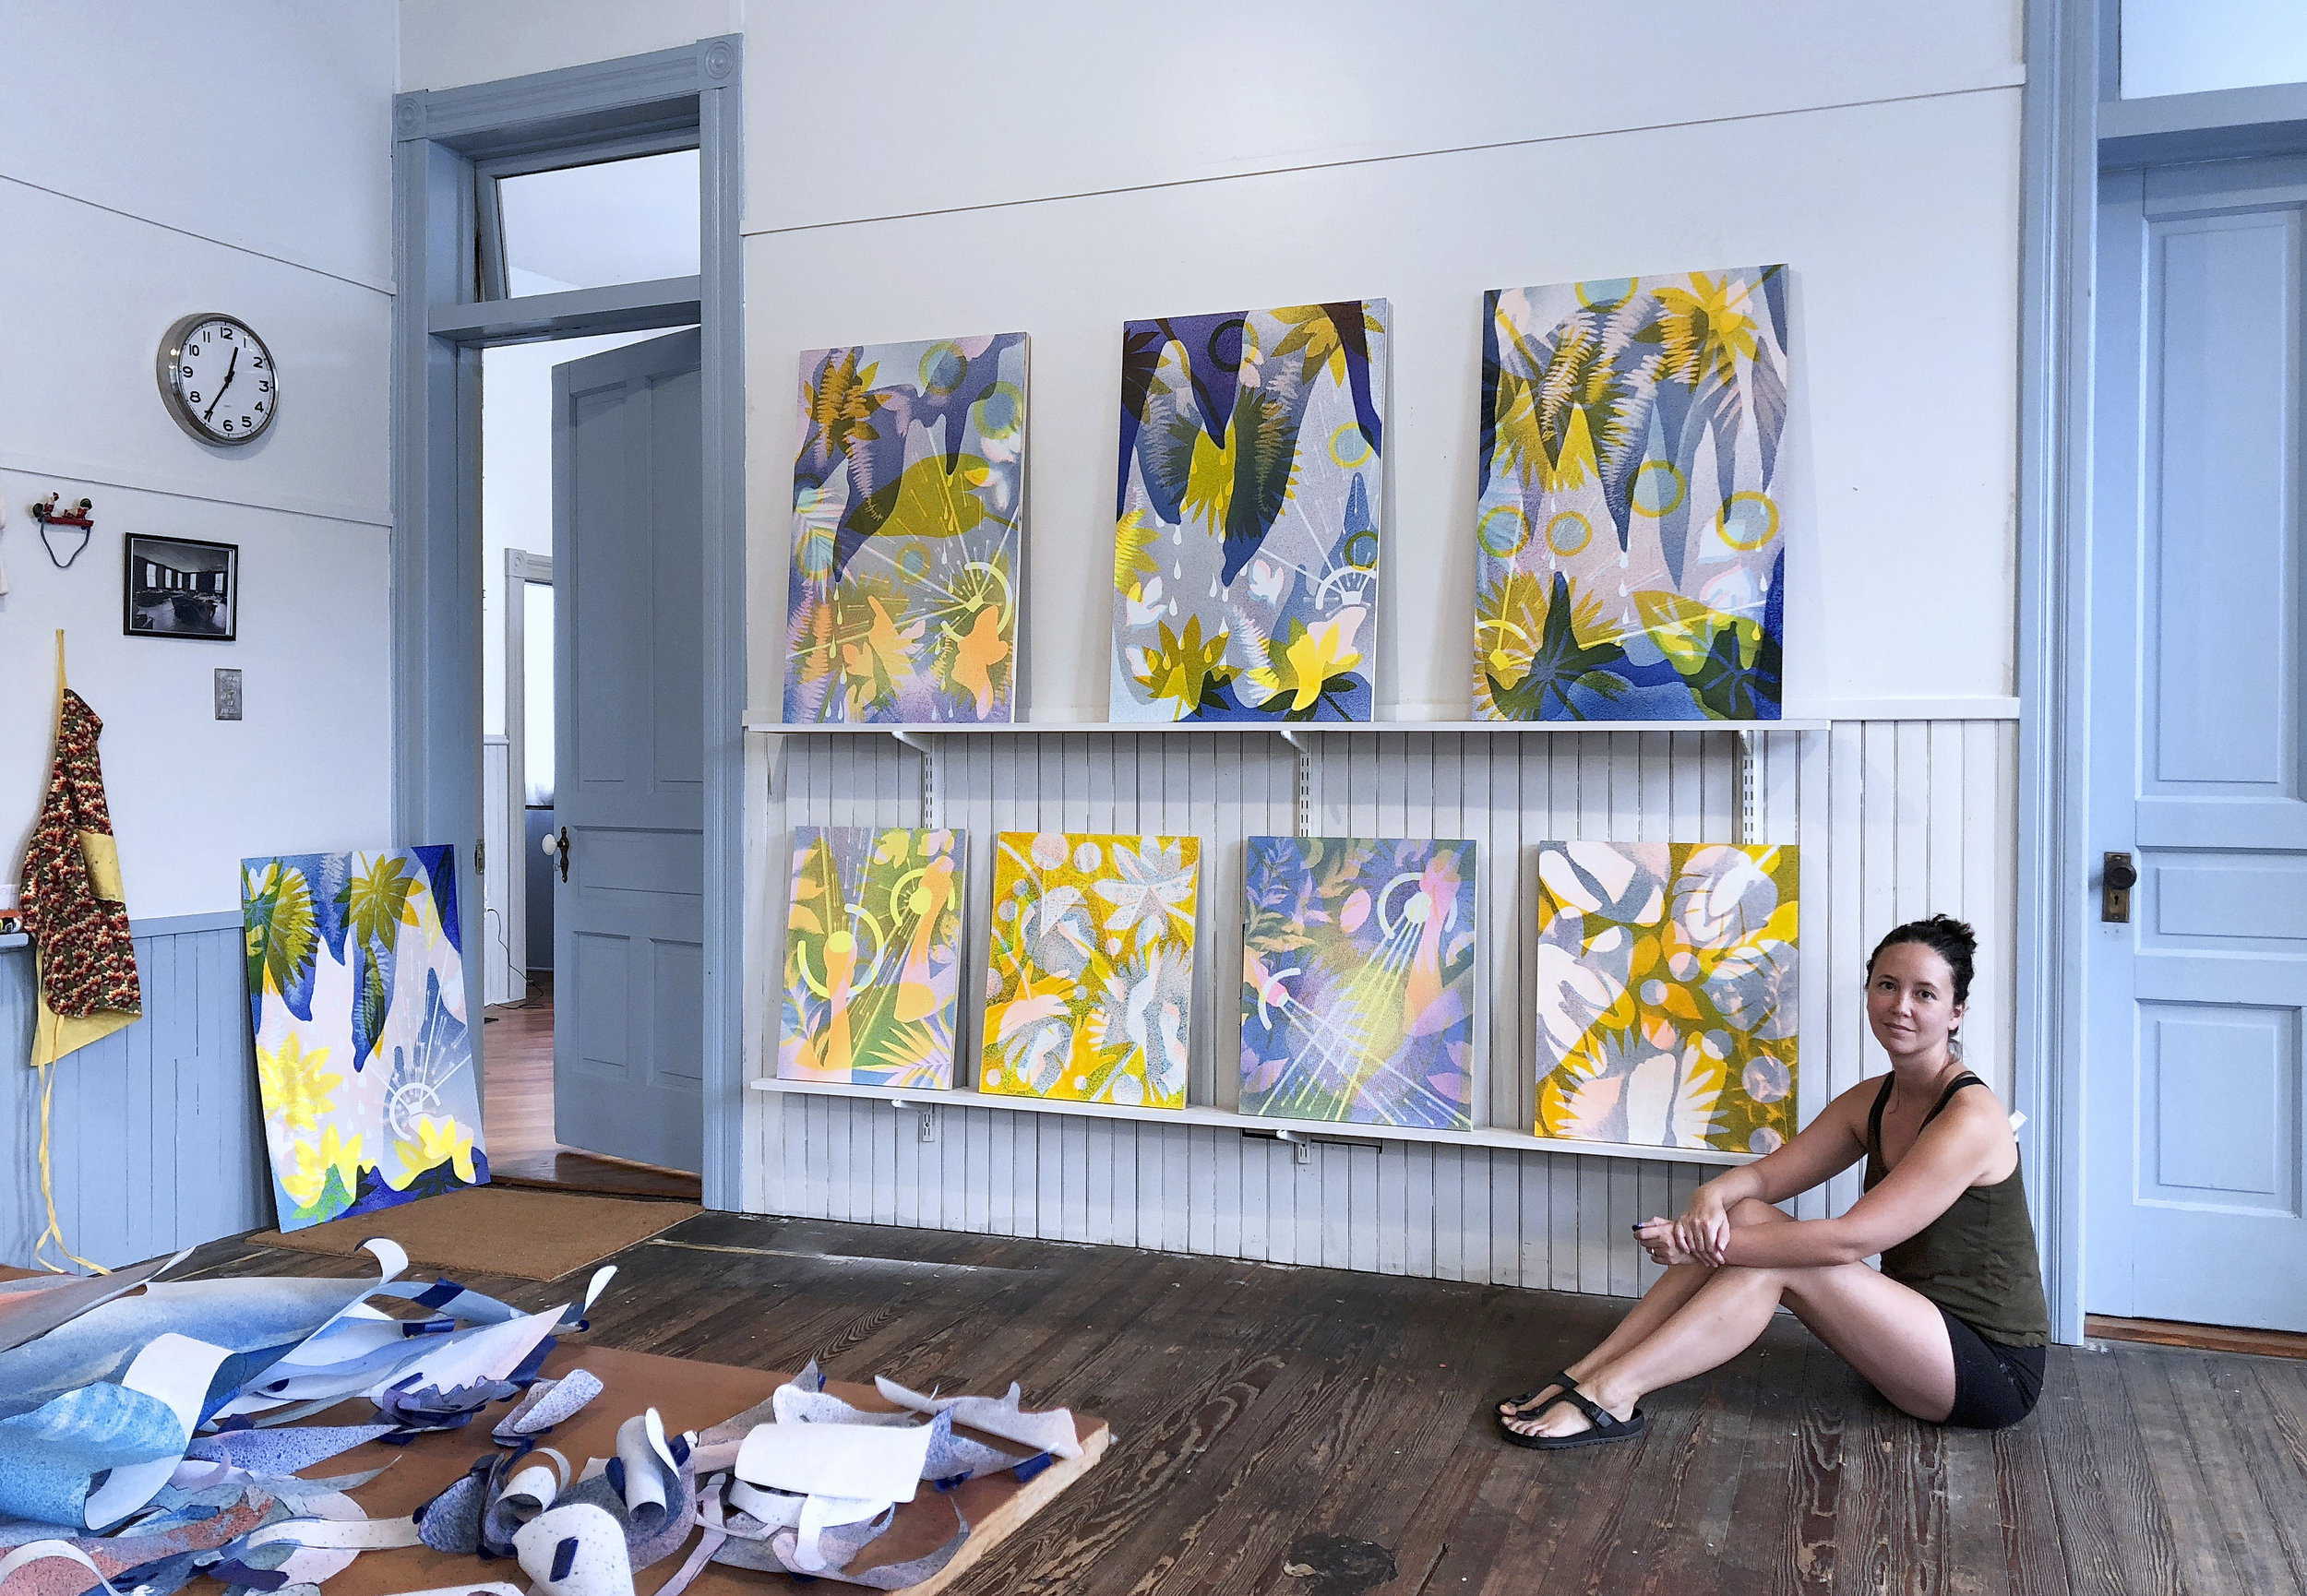 New UGallery artist Maria Stabio in front of her artwork.